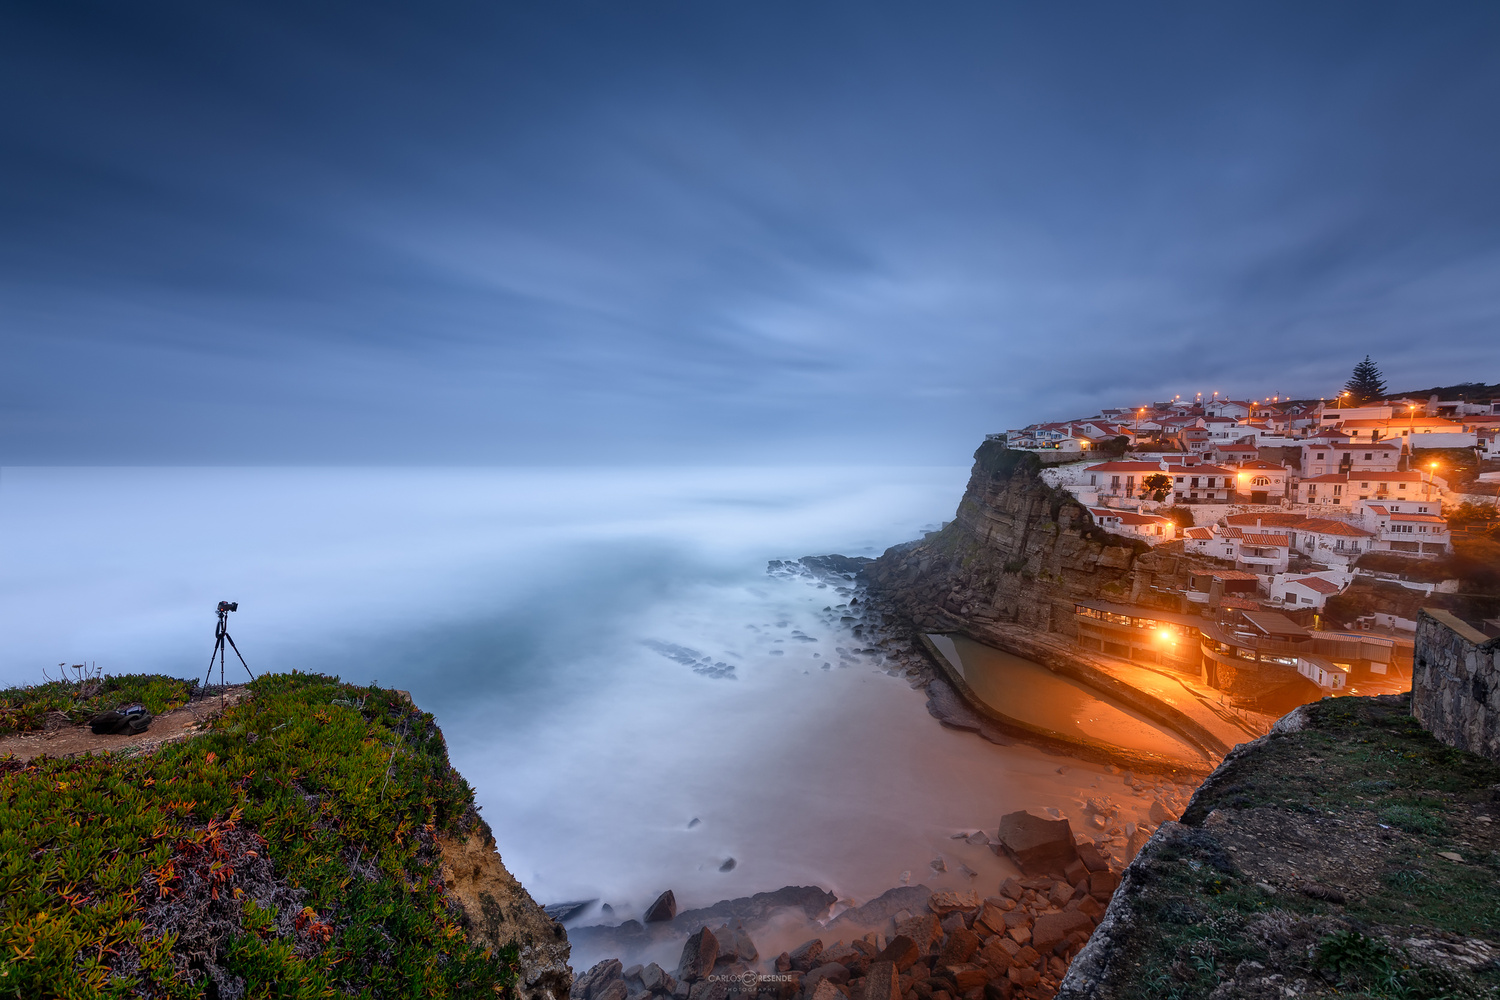 That the good light may always be with you by Carlos Resende